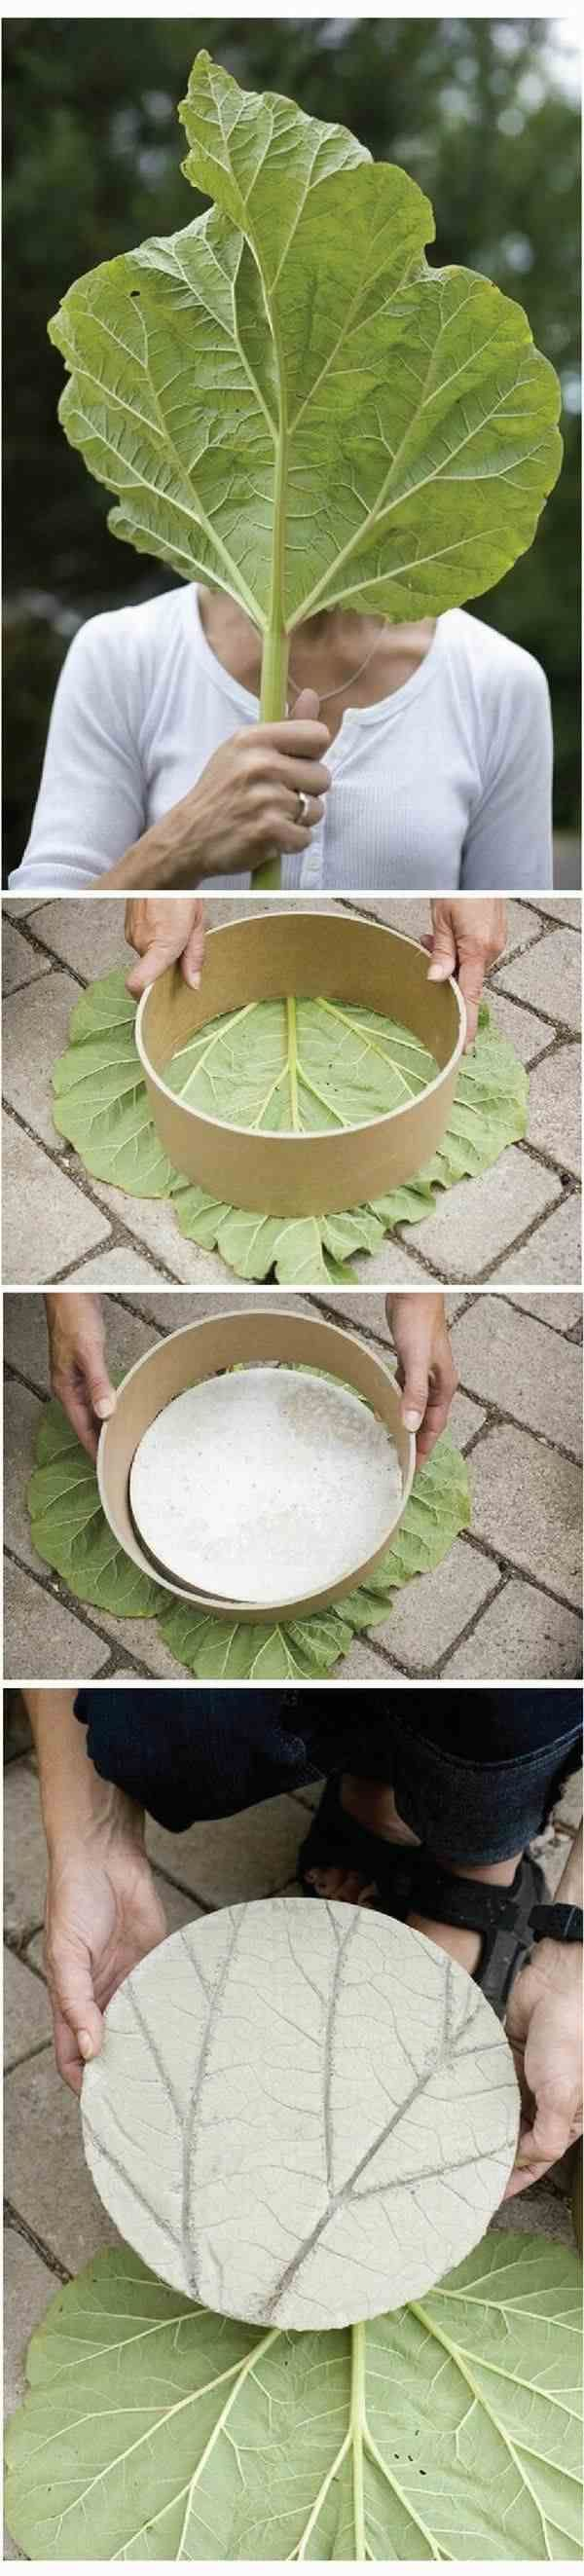 Diy Stepping Stones Best 25 Homemade Stepping Stones Ideas Only On Pinterest Diy